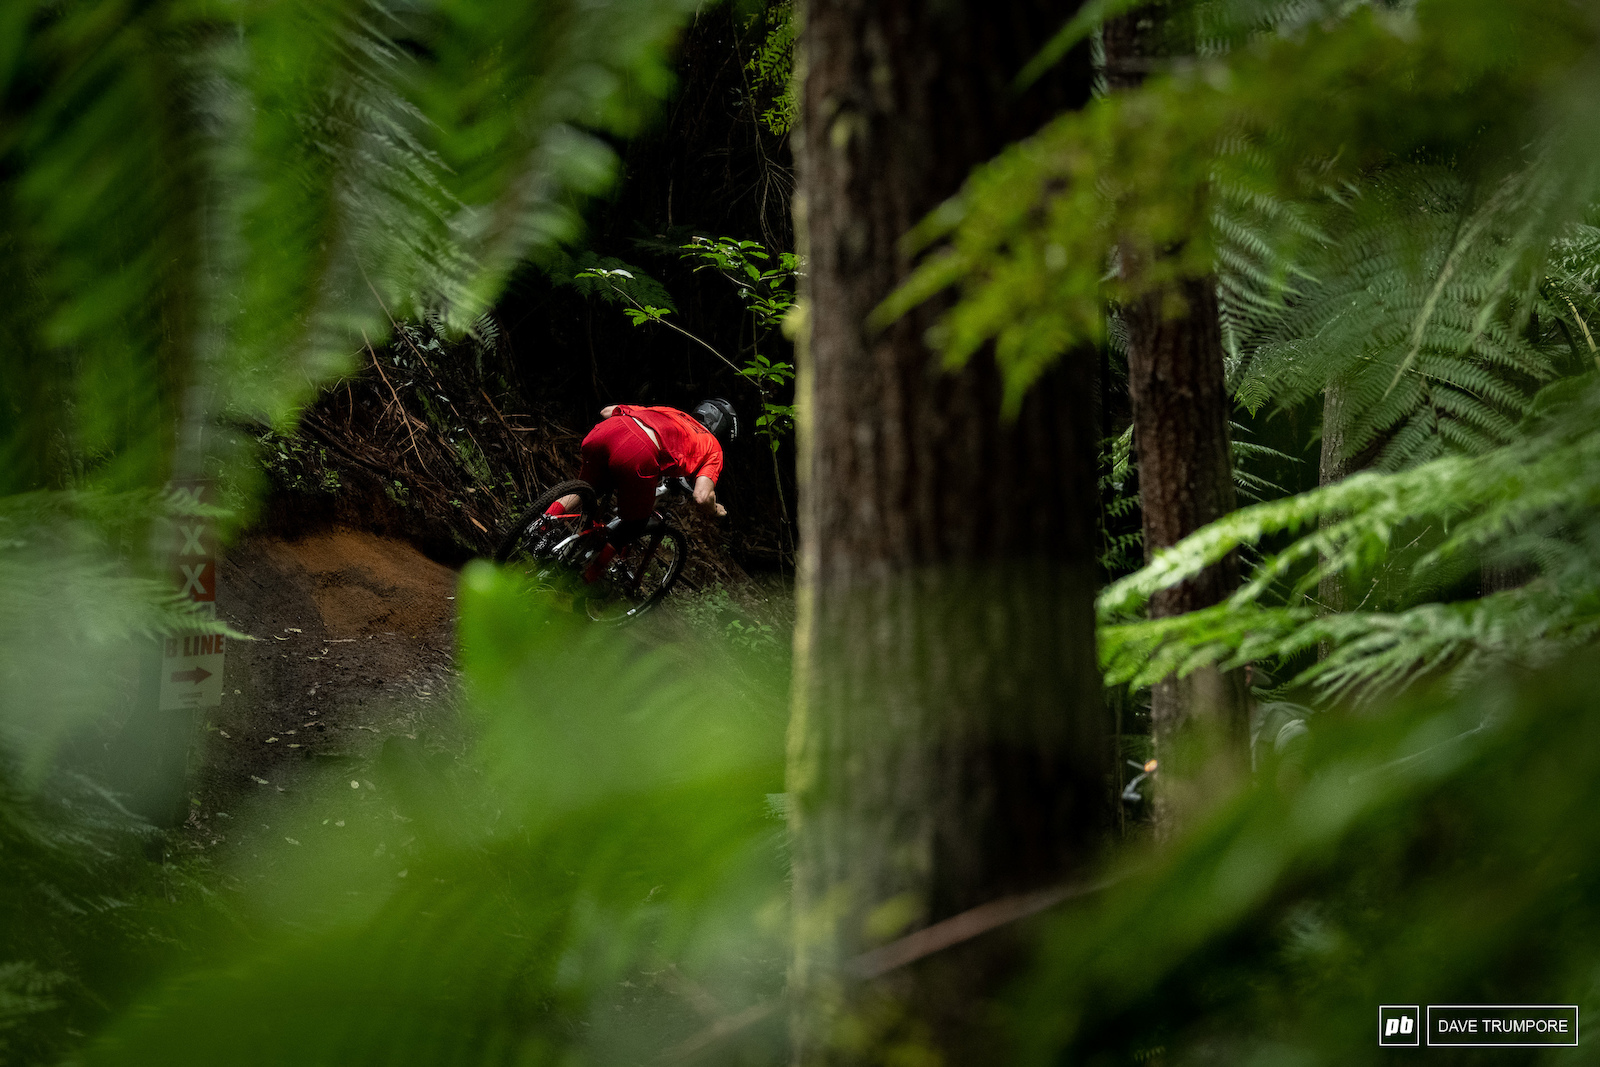 Keegan Wright was just a blur of red through the greenery of the forest.